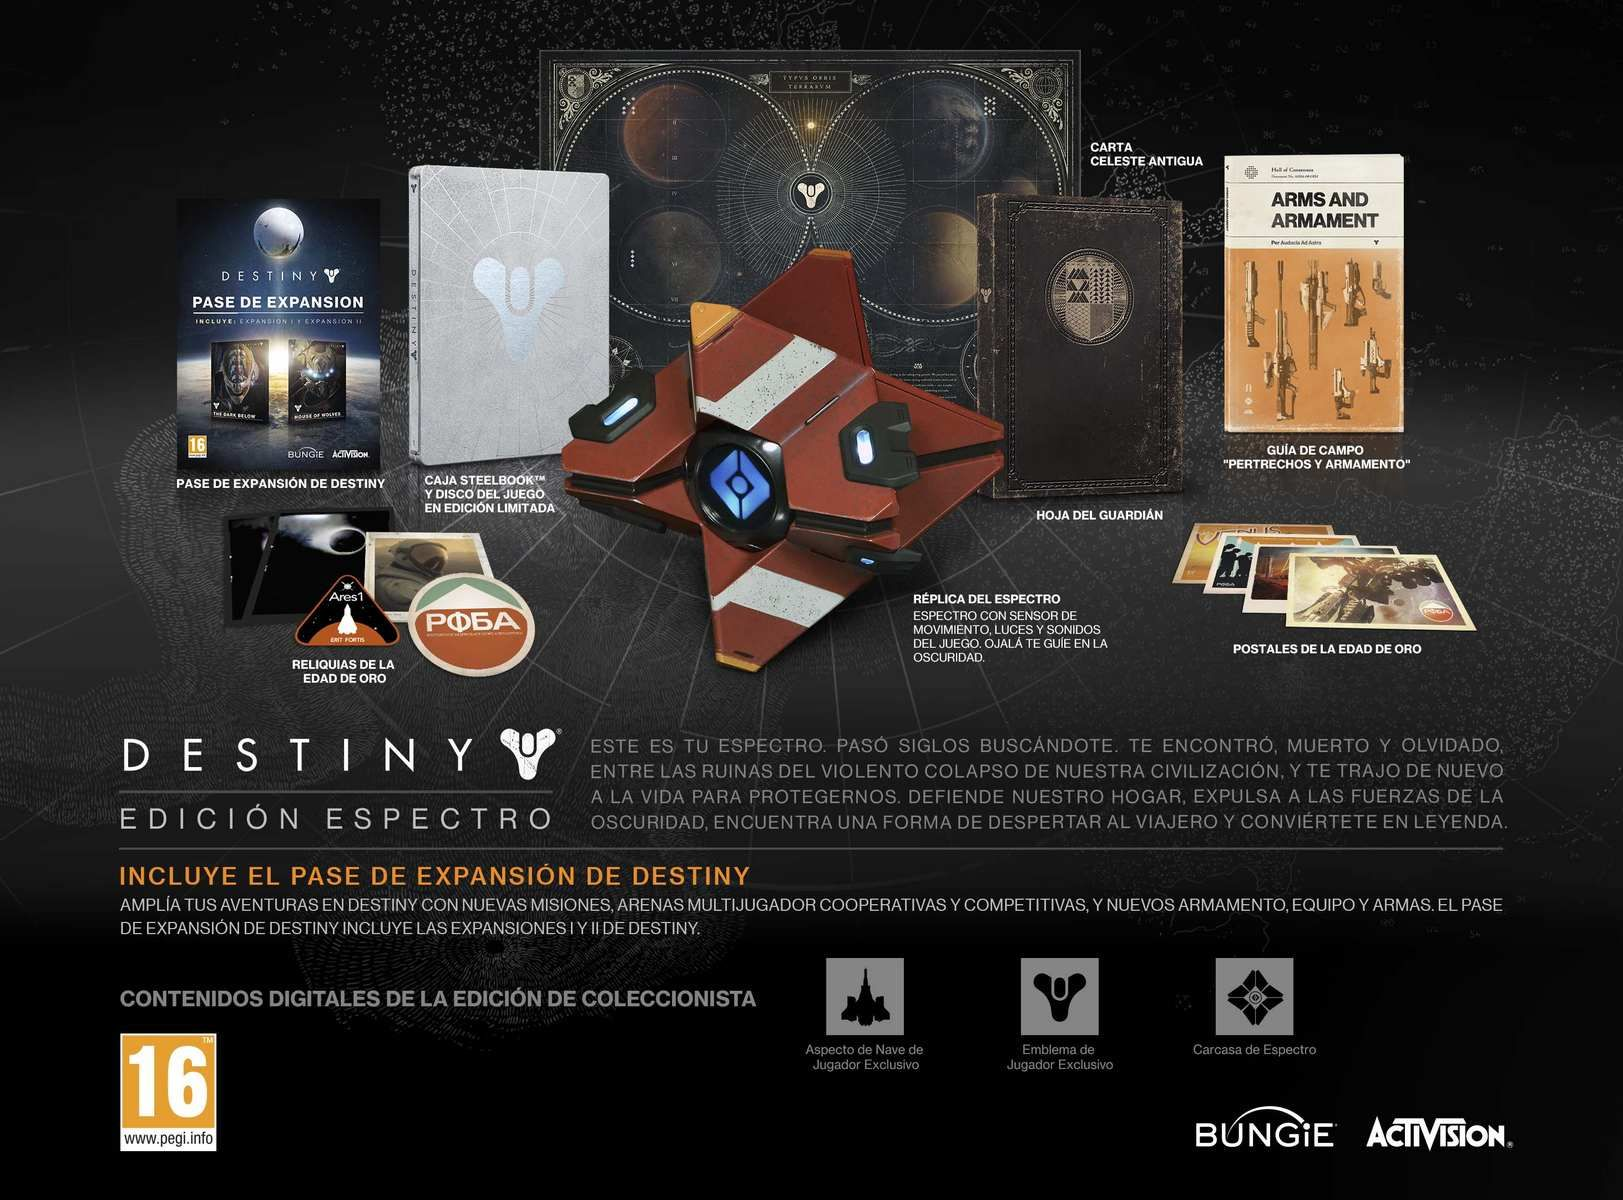 Pin By Jesse Tate On Mis Ediciones Especiales De Videojuegos Y Peliculas Destiny Destiny Ps4 Destiny Ideas